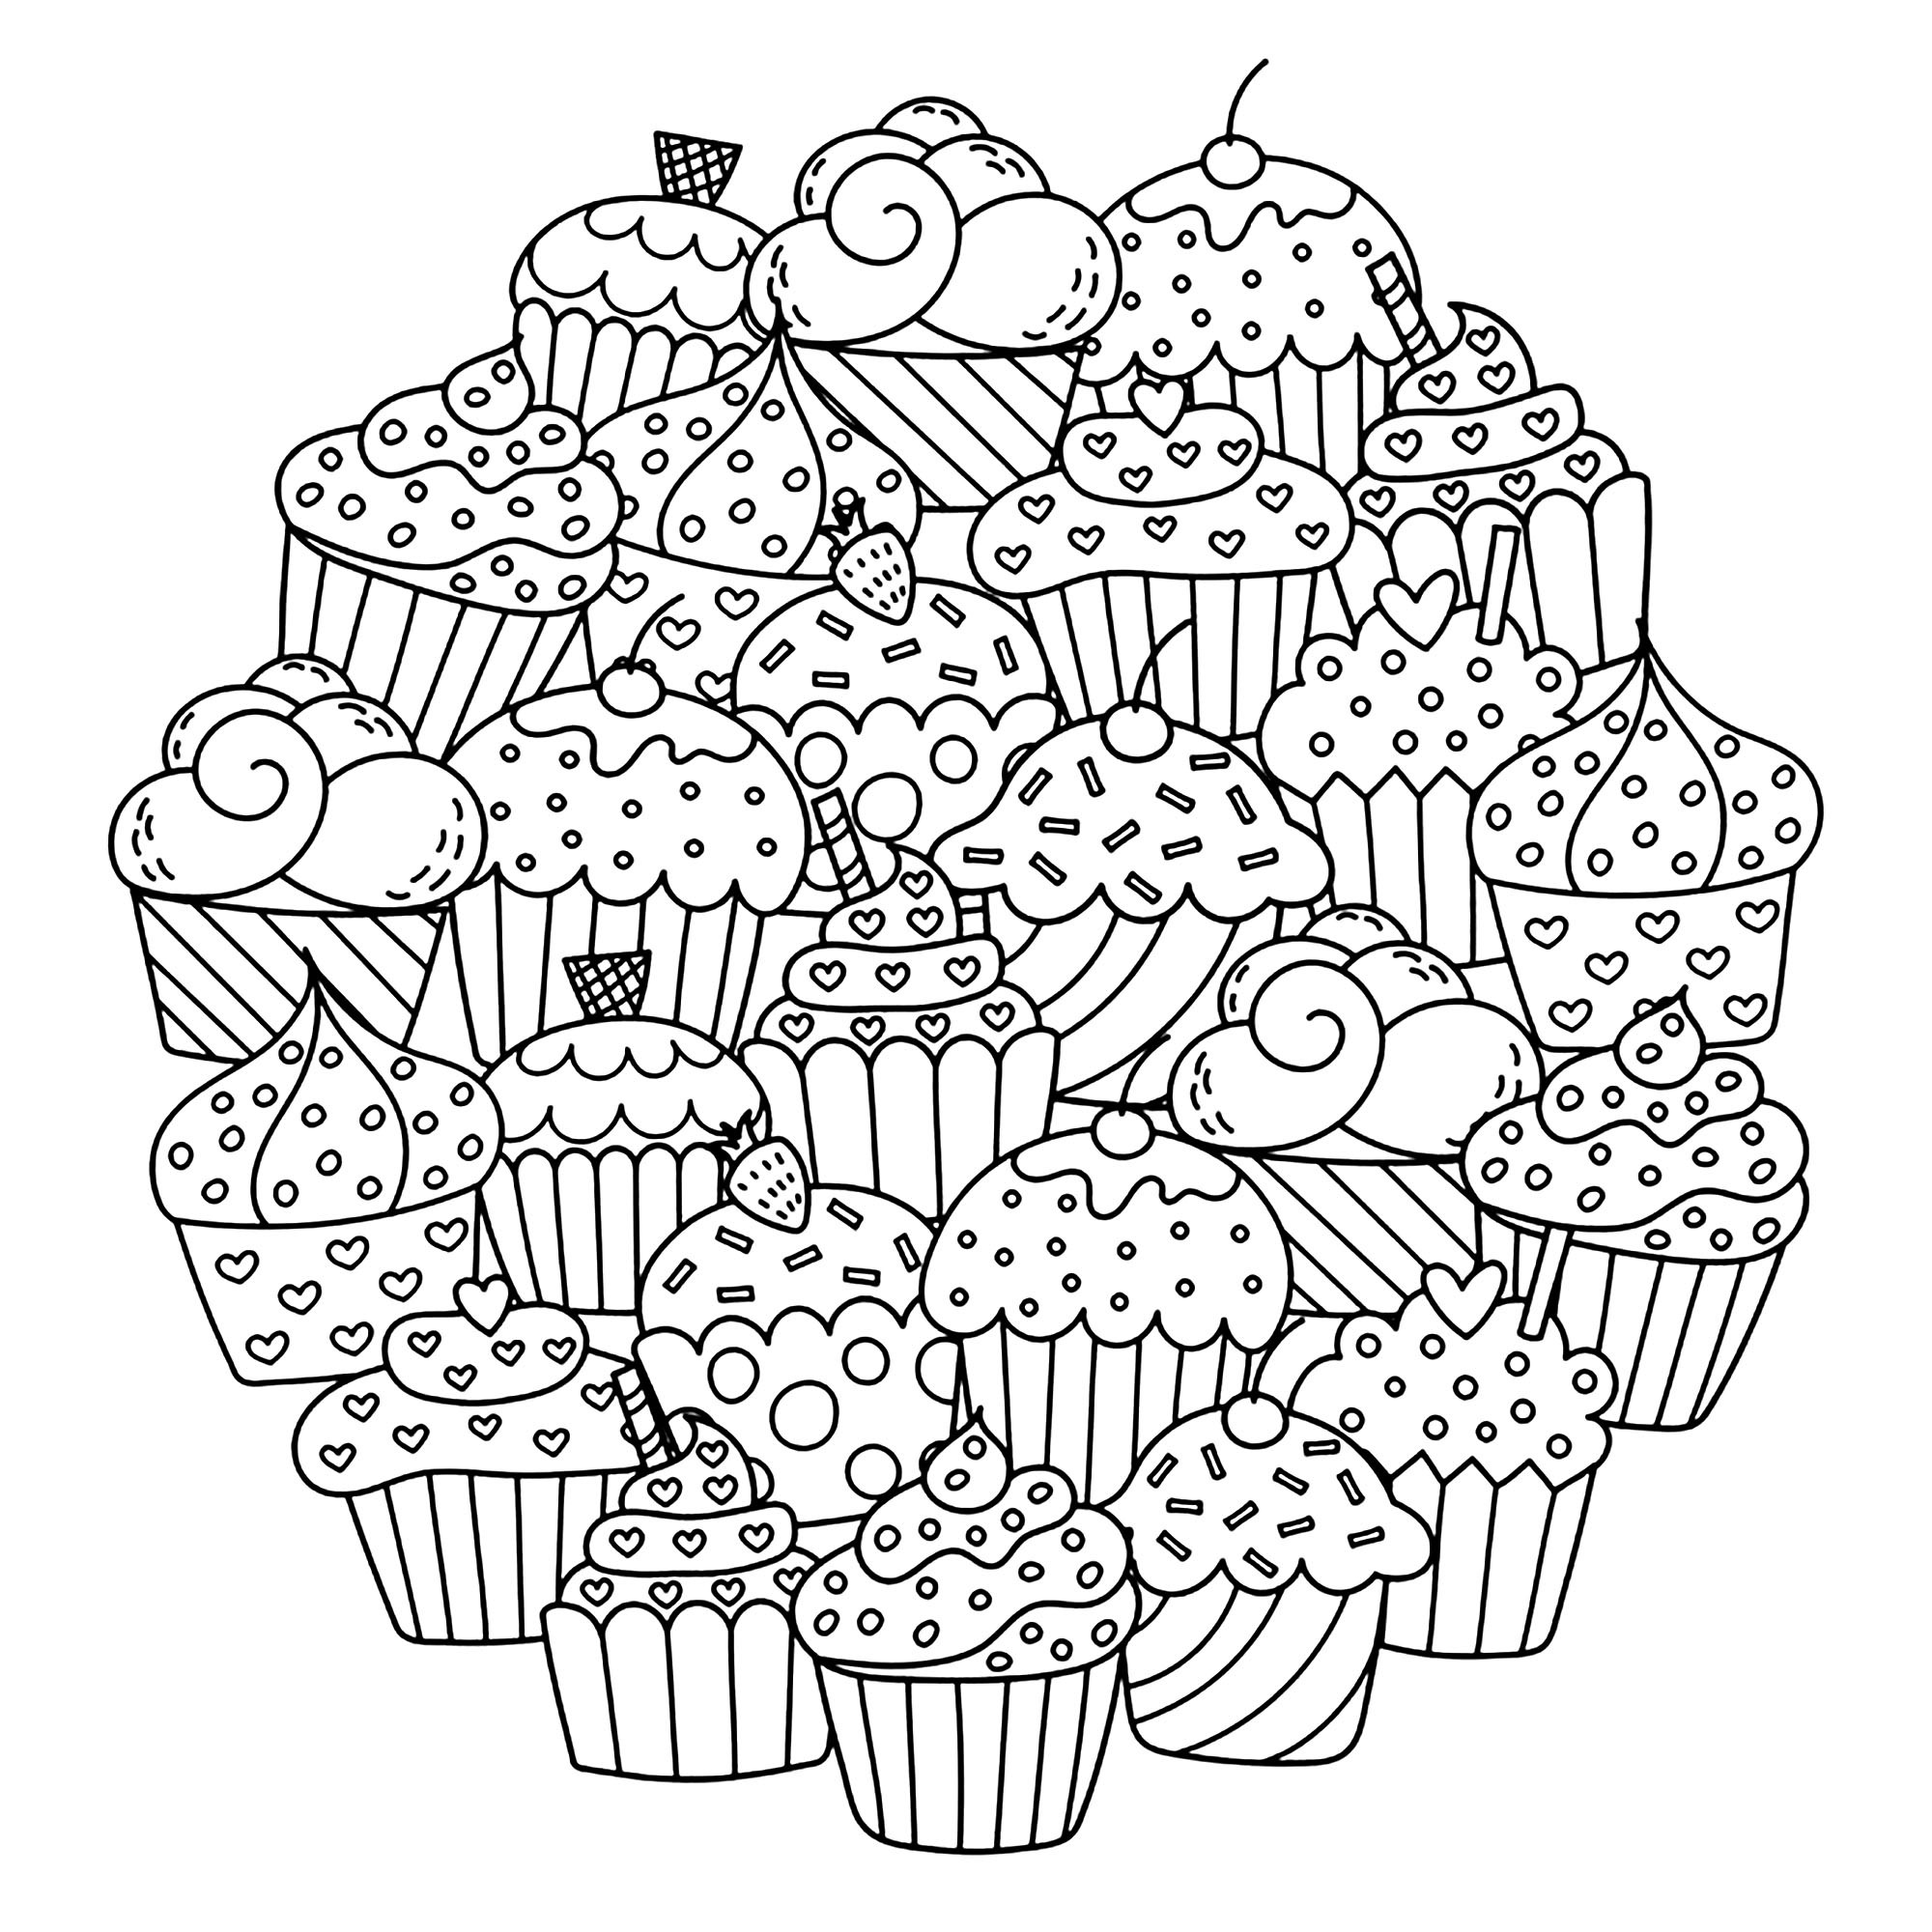 coloring pages cupcakes cupcakes and cakes to color for kids cupcakes and cakes coloring cupcakes pages